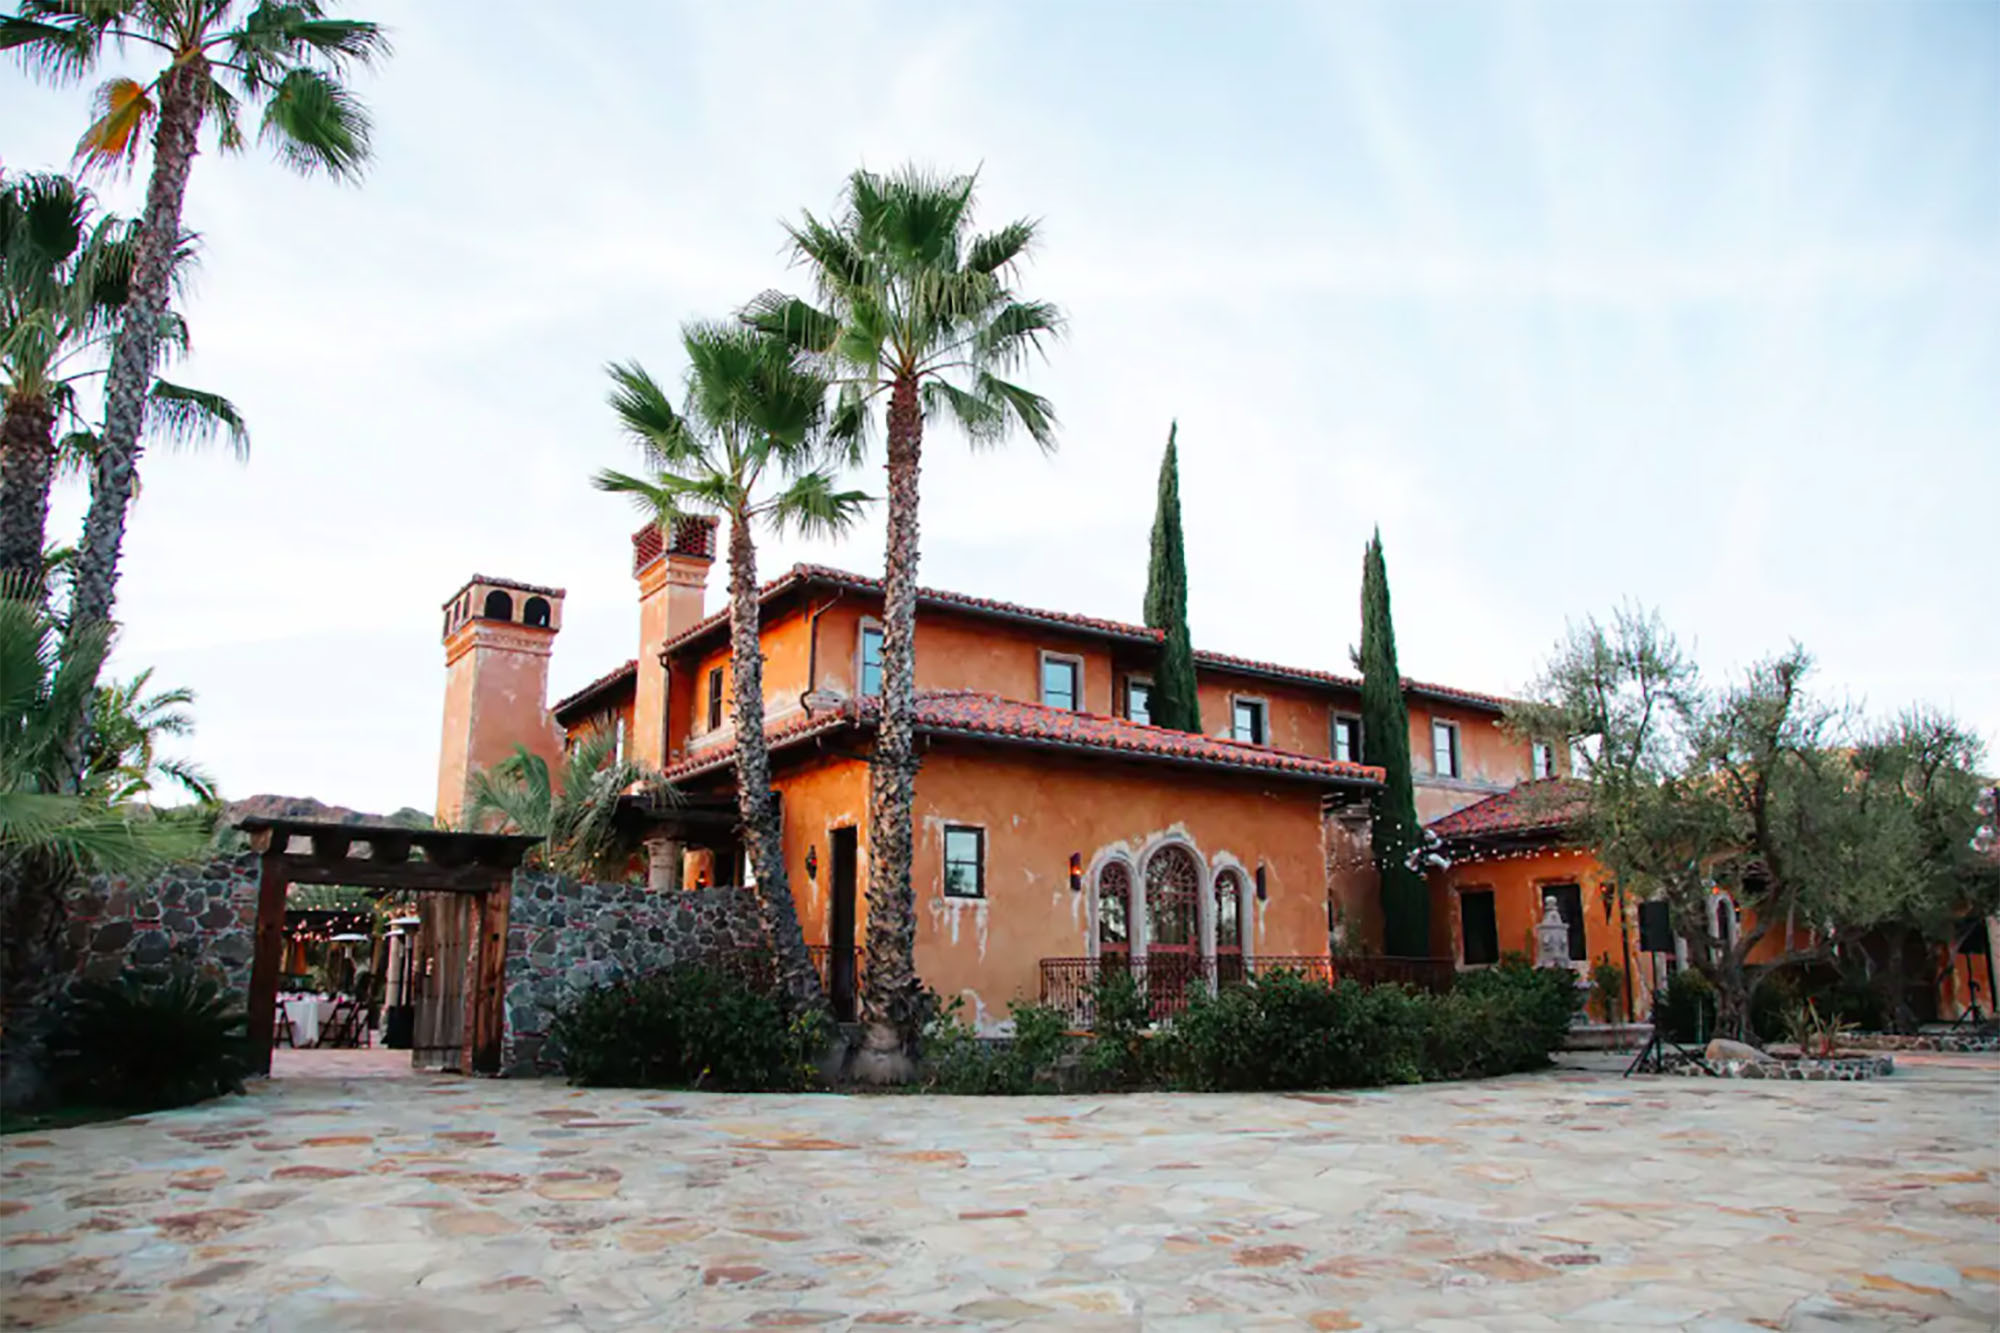 You can rent the 'Bachelor' mansion on Airbnb for ,000/night